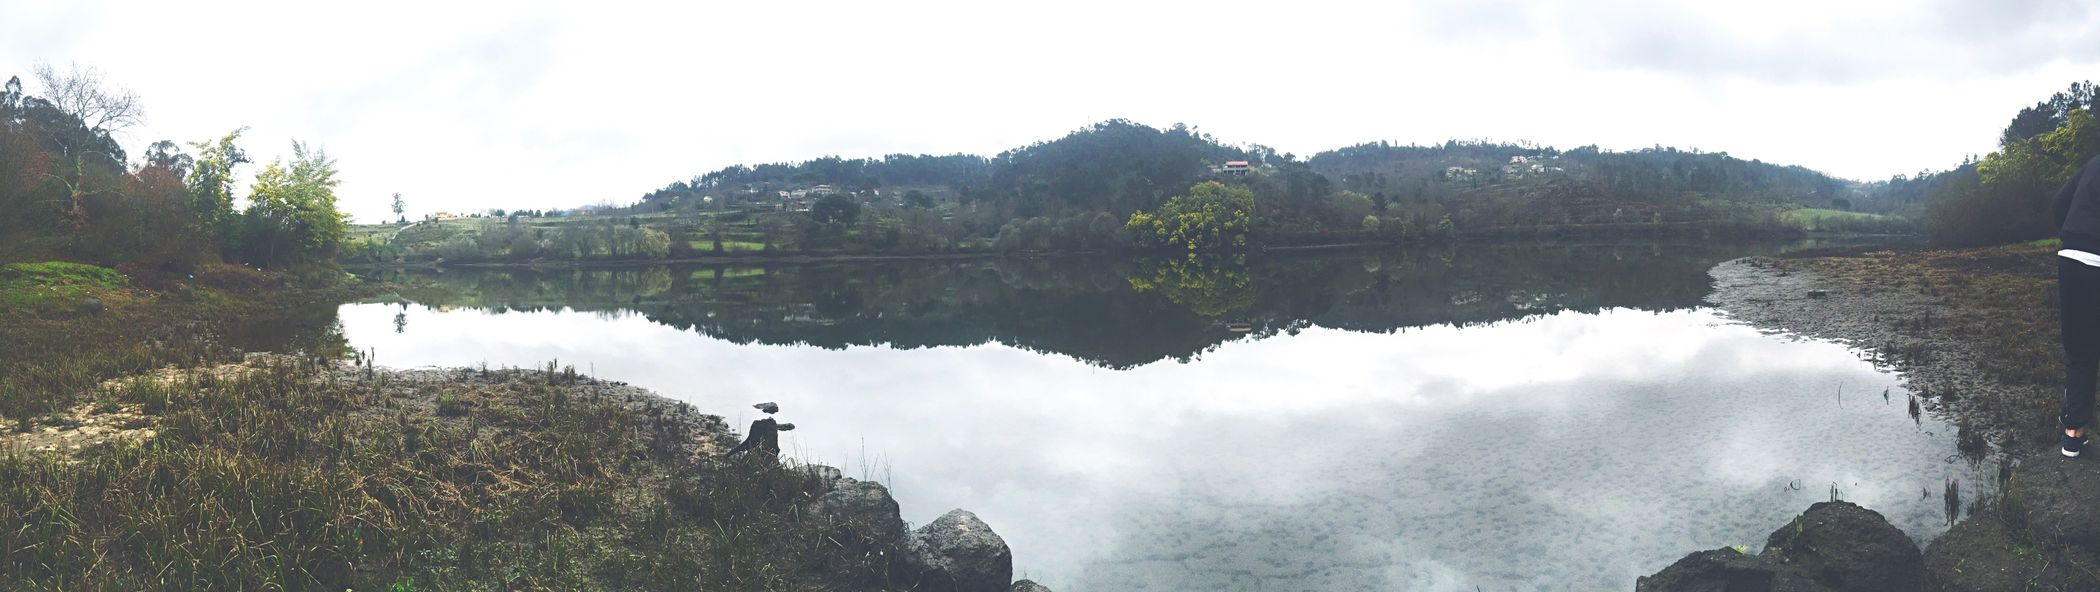 Enjoying Life Taking Photos Landscape Portugal River View Check This Out